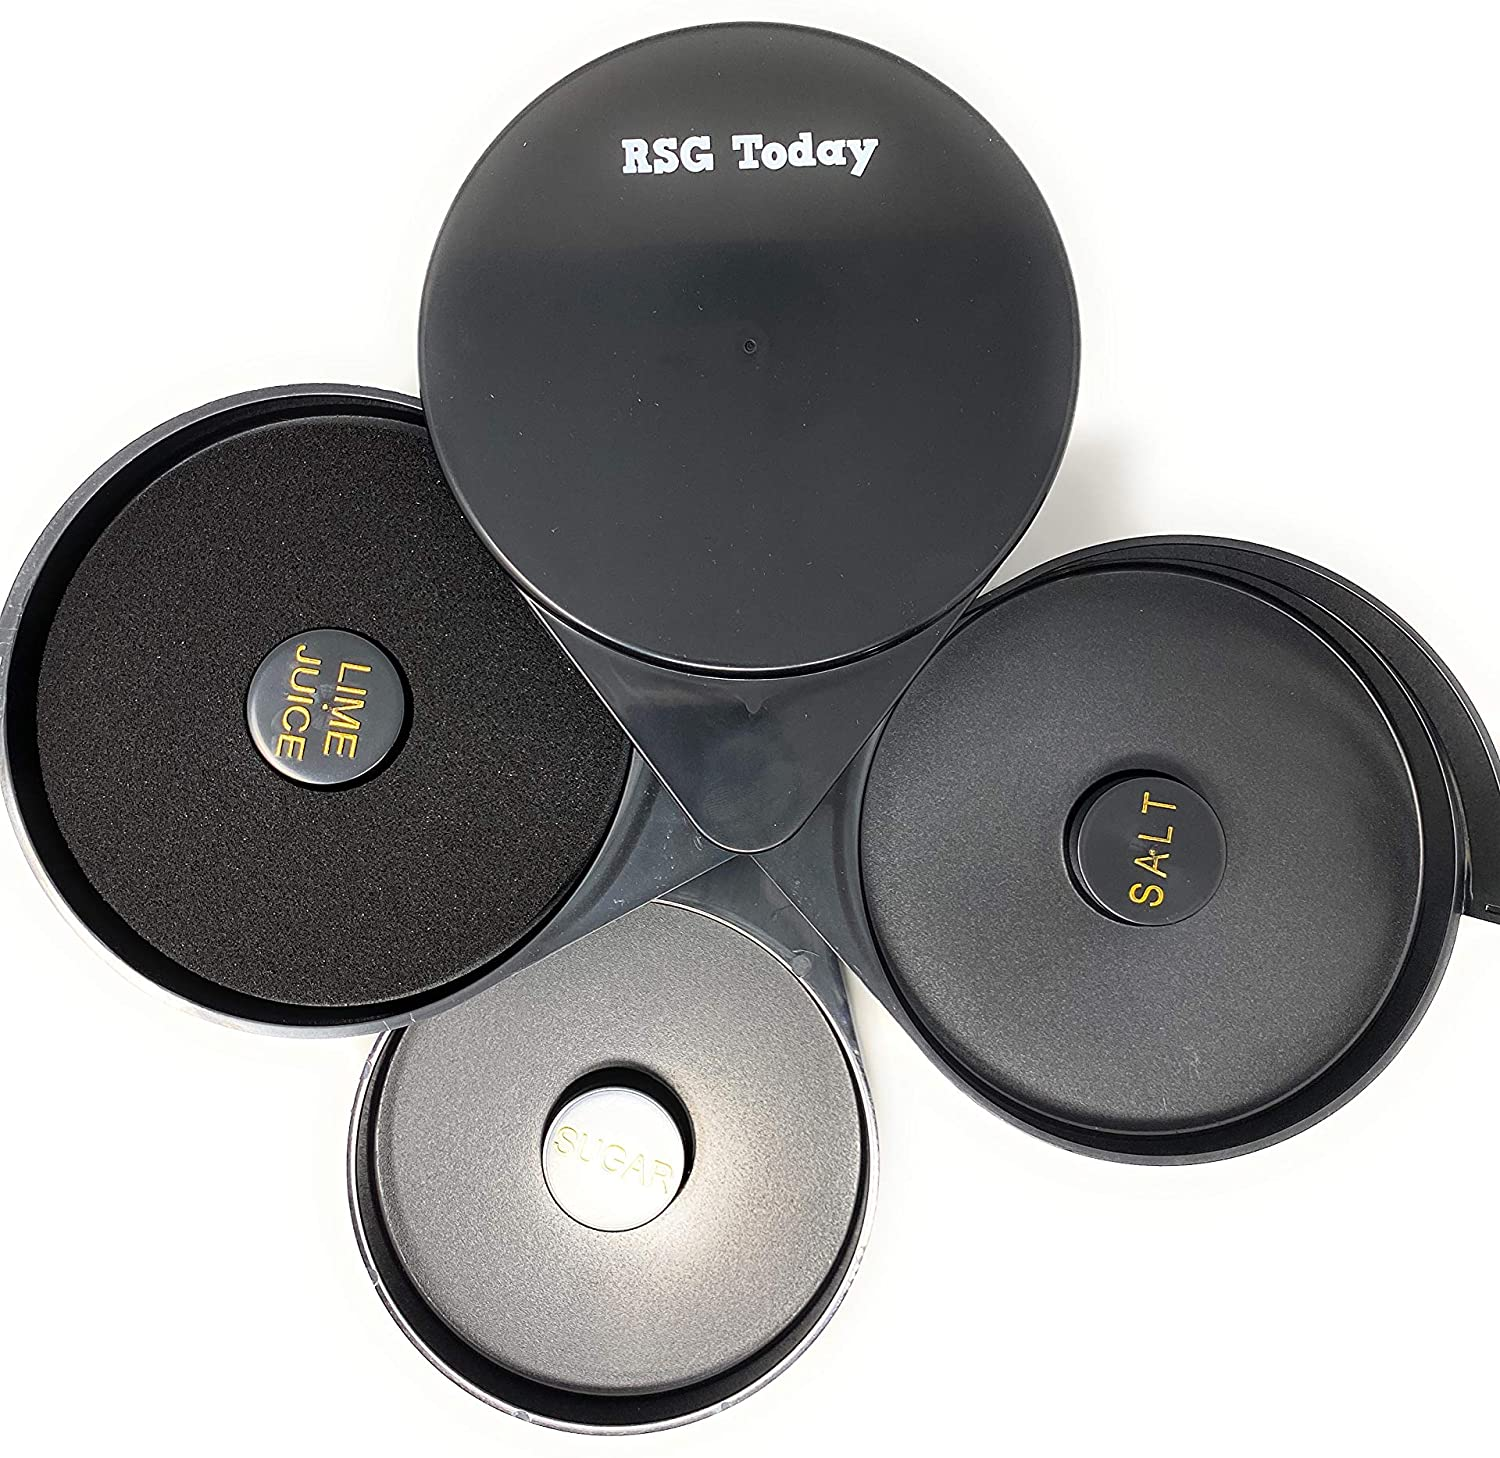 RSG TODAY Black Plastic Glass Rimmer and Margarita Salter with 3 Compartments